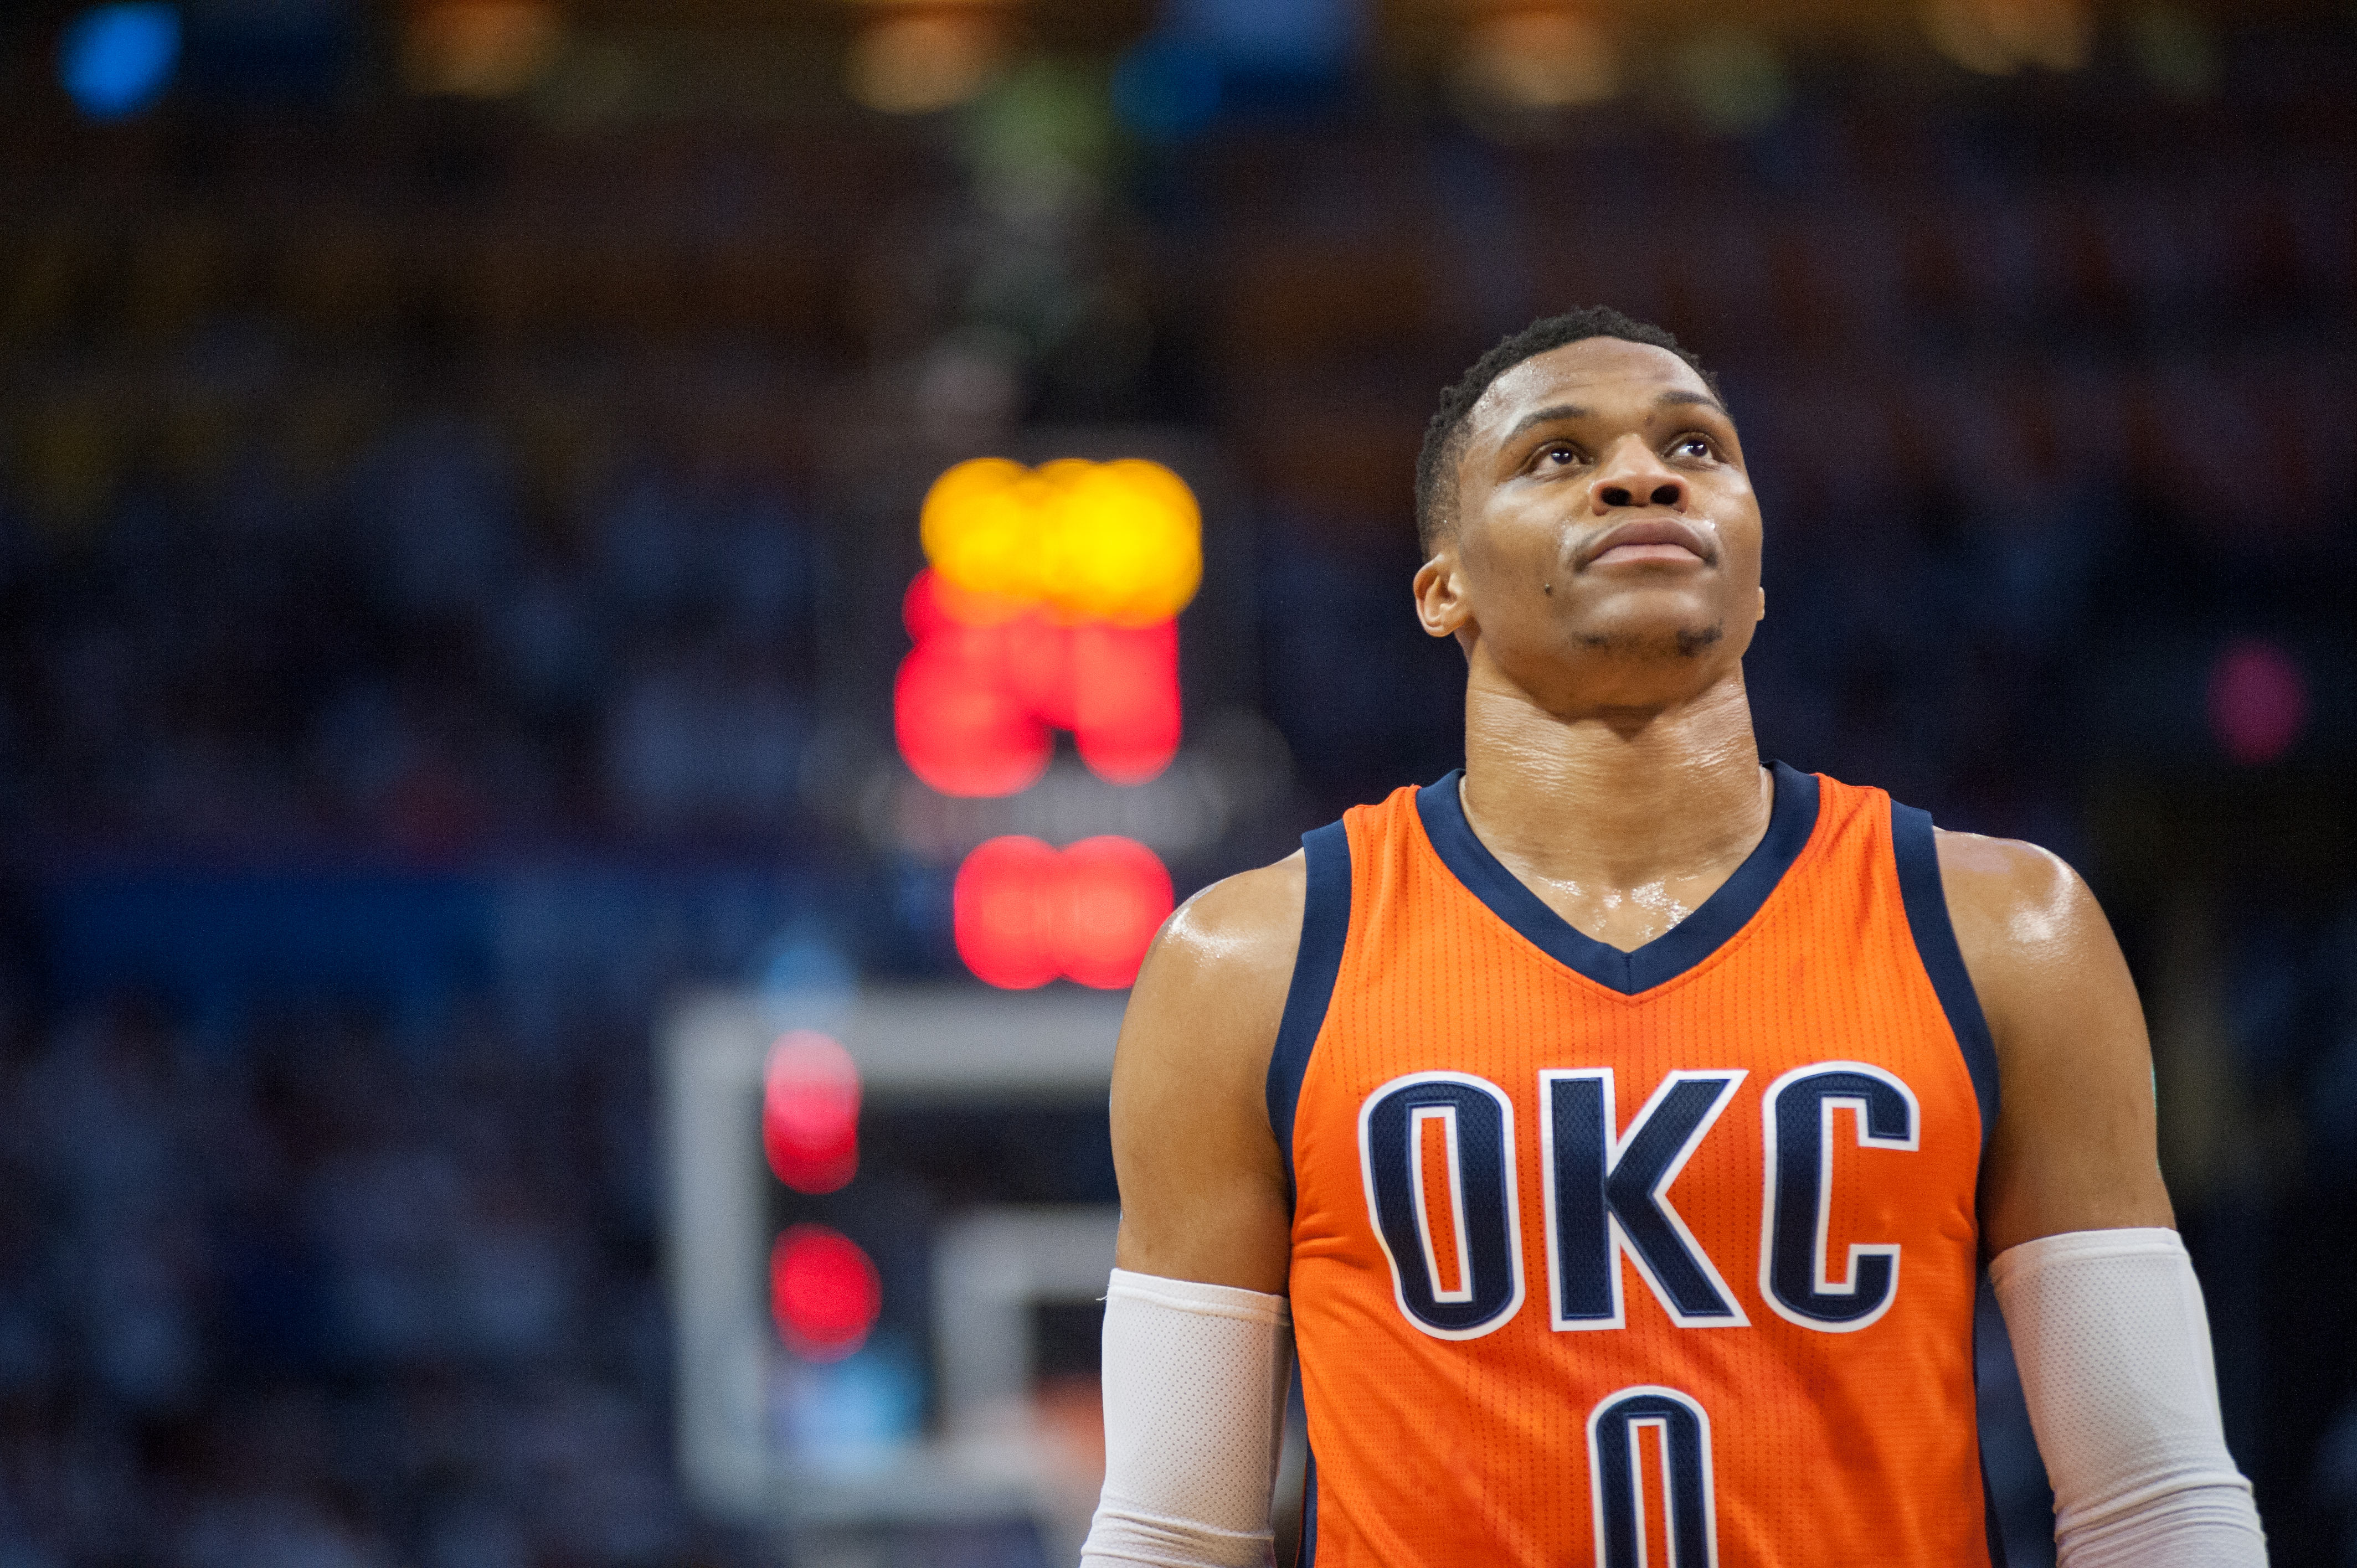 russell westbrook - photo #21